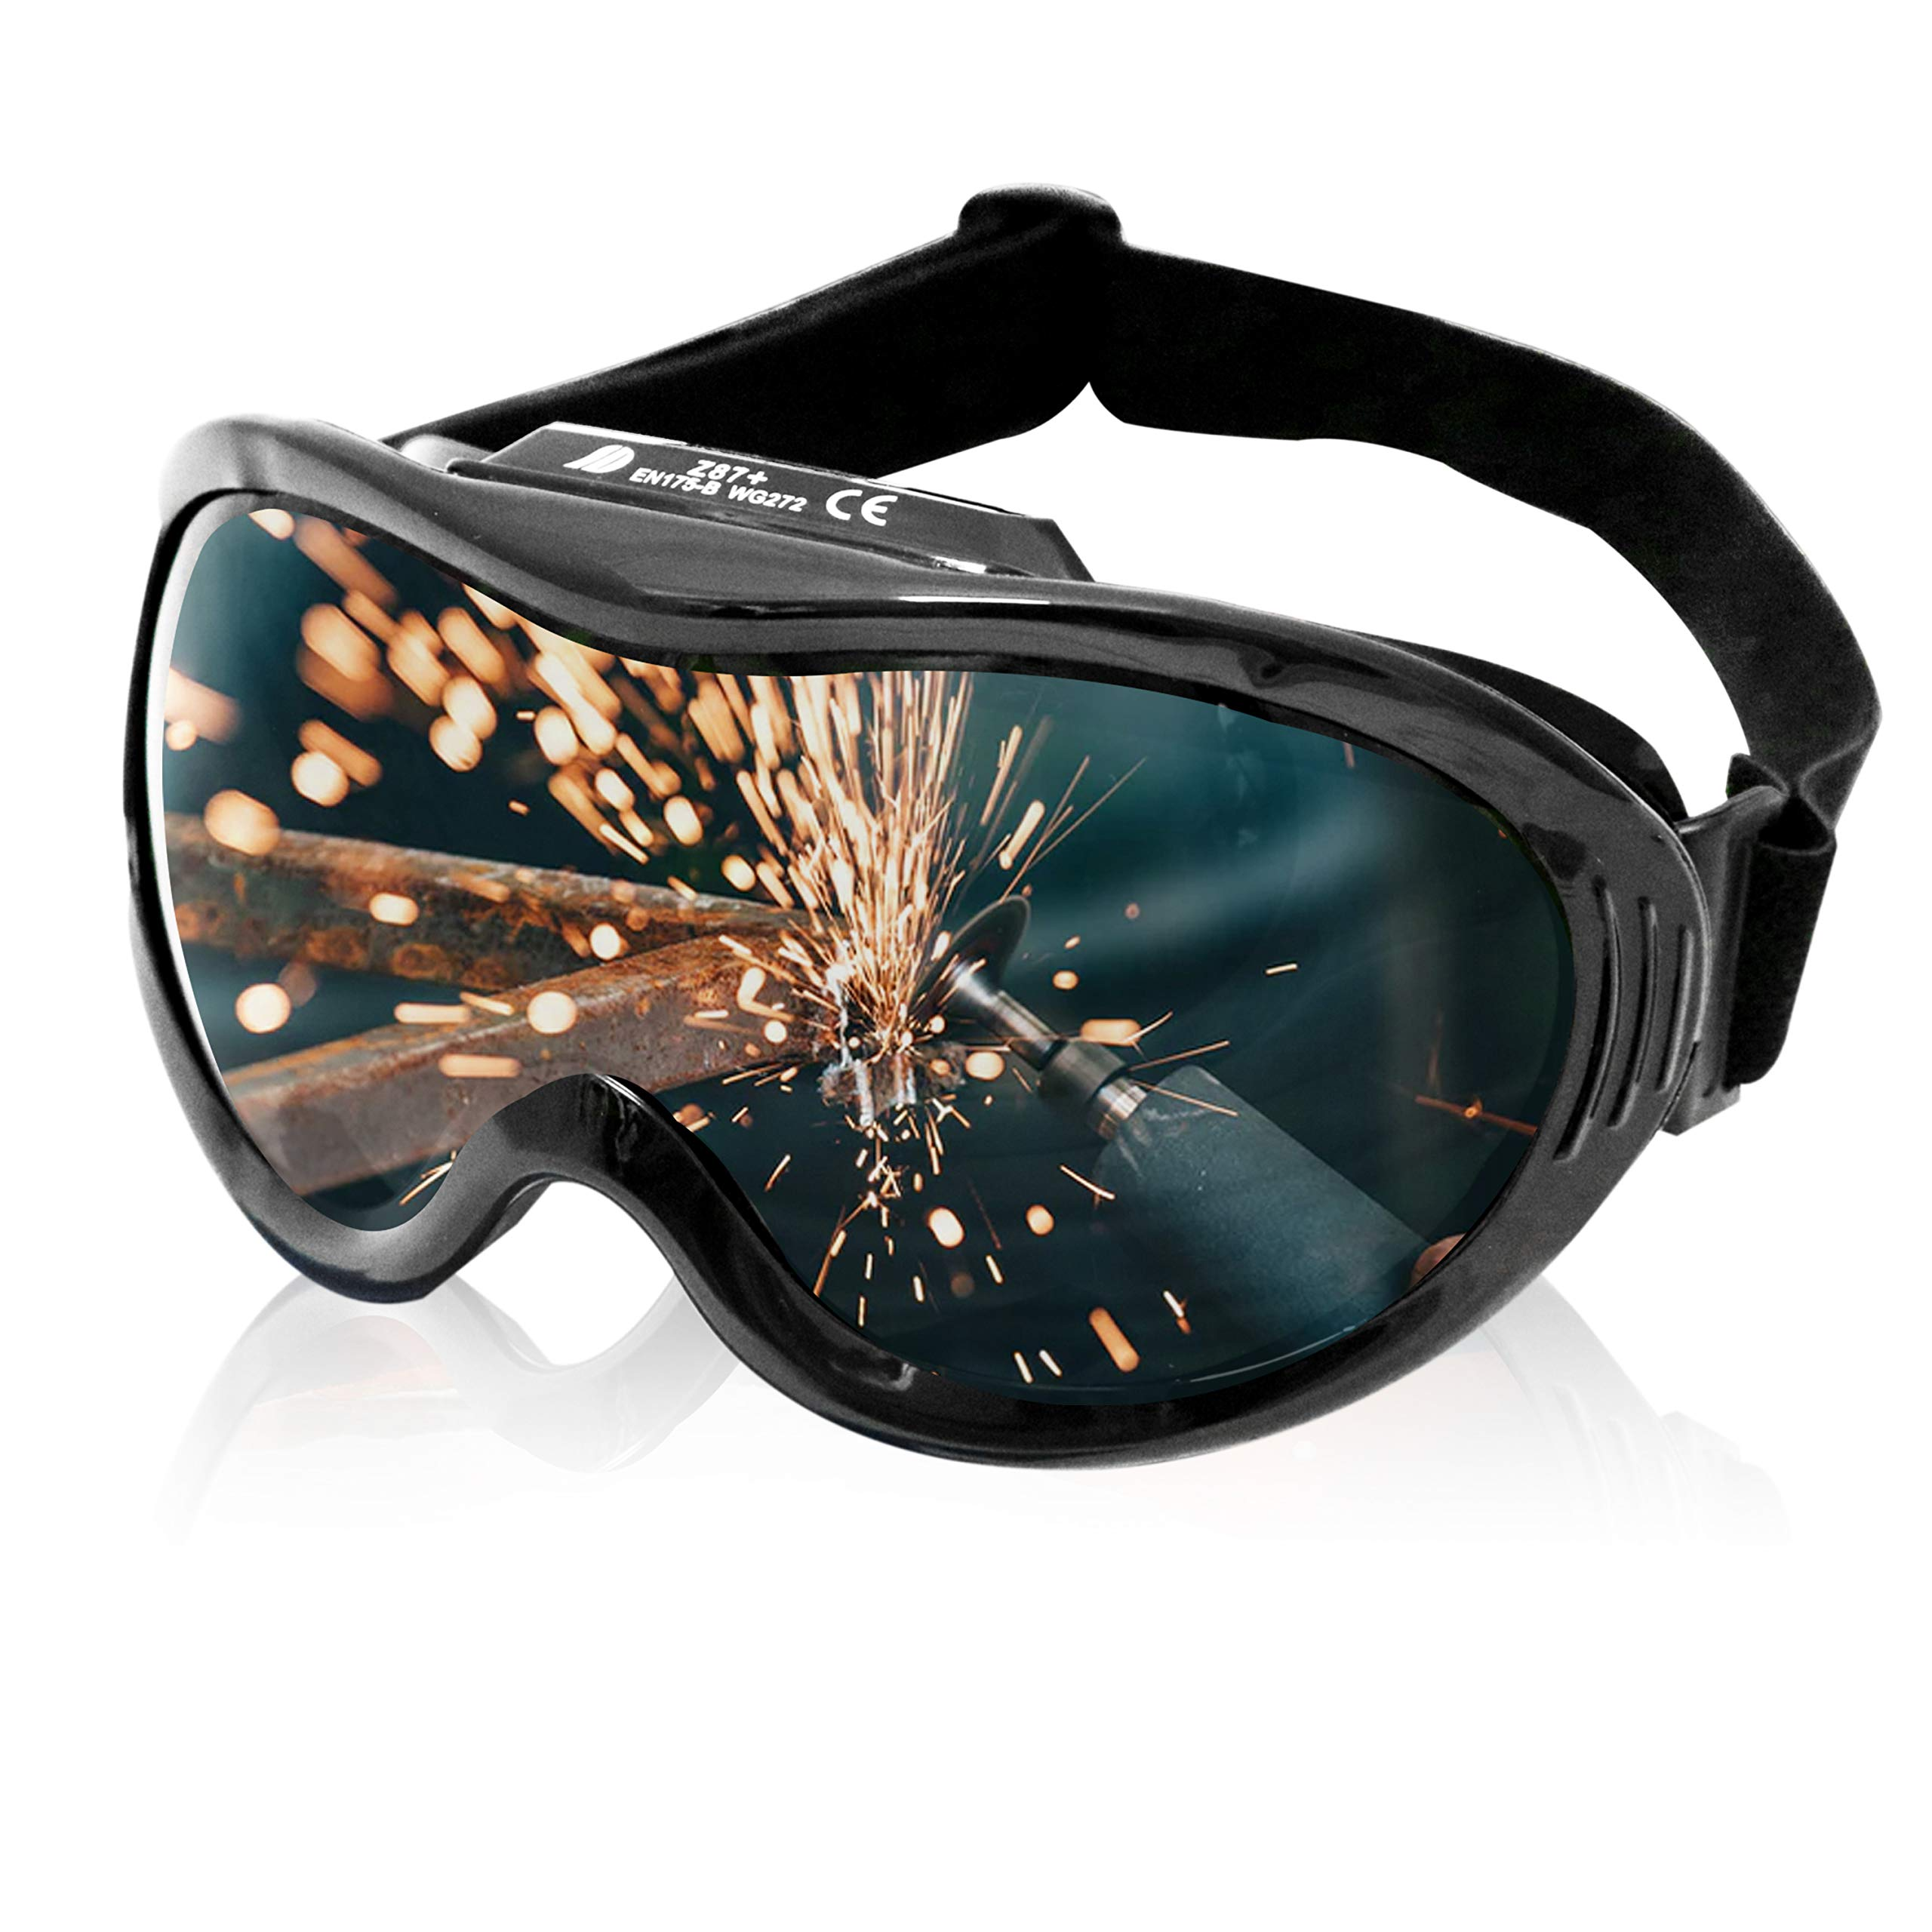 KwikSafety (Charlotte, NC) PIT VIPER ANSI Industrial (ANTI-FOG, ANTI-SCRATCH, Snug FIT) Welding Goggles Shade 5 | Ventilation Infrared Welding Torch Brazing Flame Cutting Gas Oxy-Acetylene Black